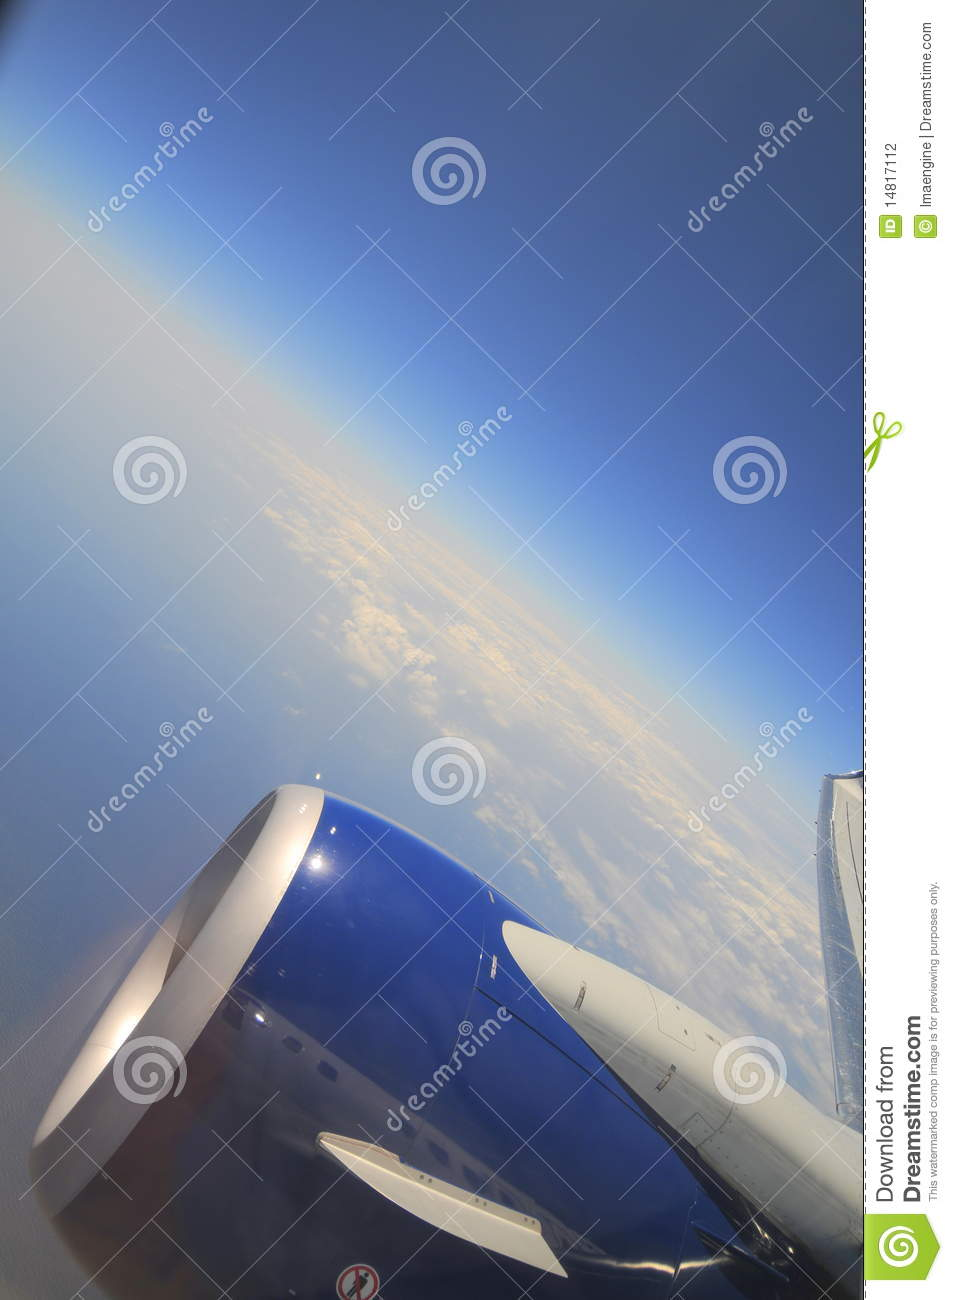 Curvature Of The Earth (Airplane Window View) Stock Photo - Image of